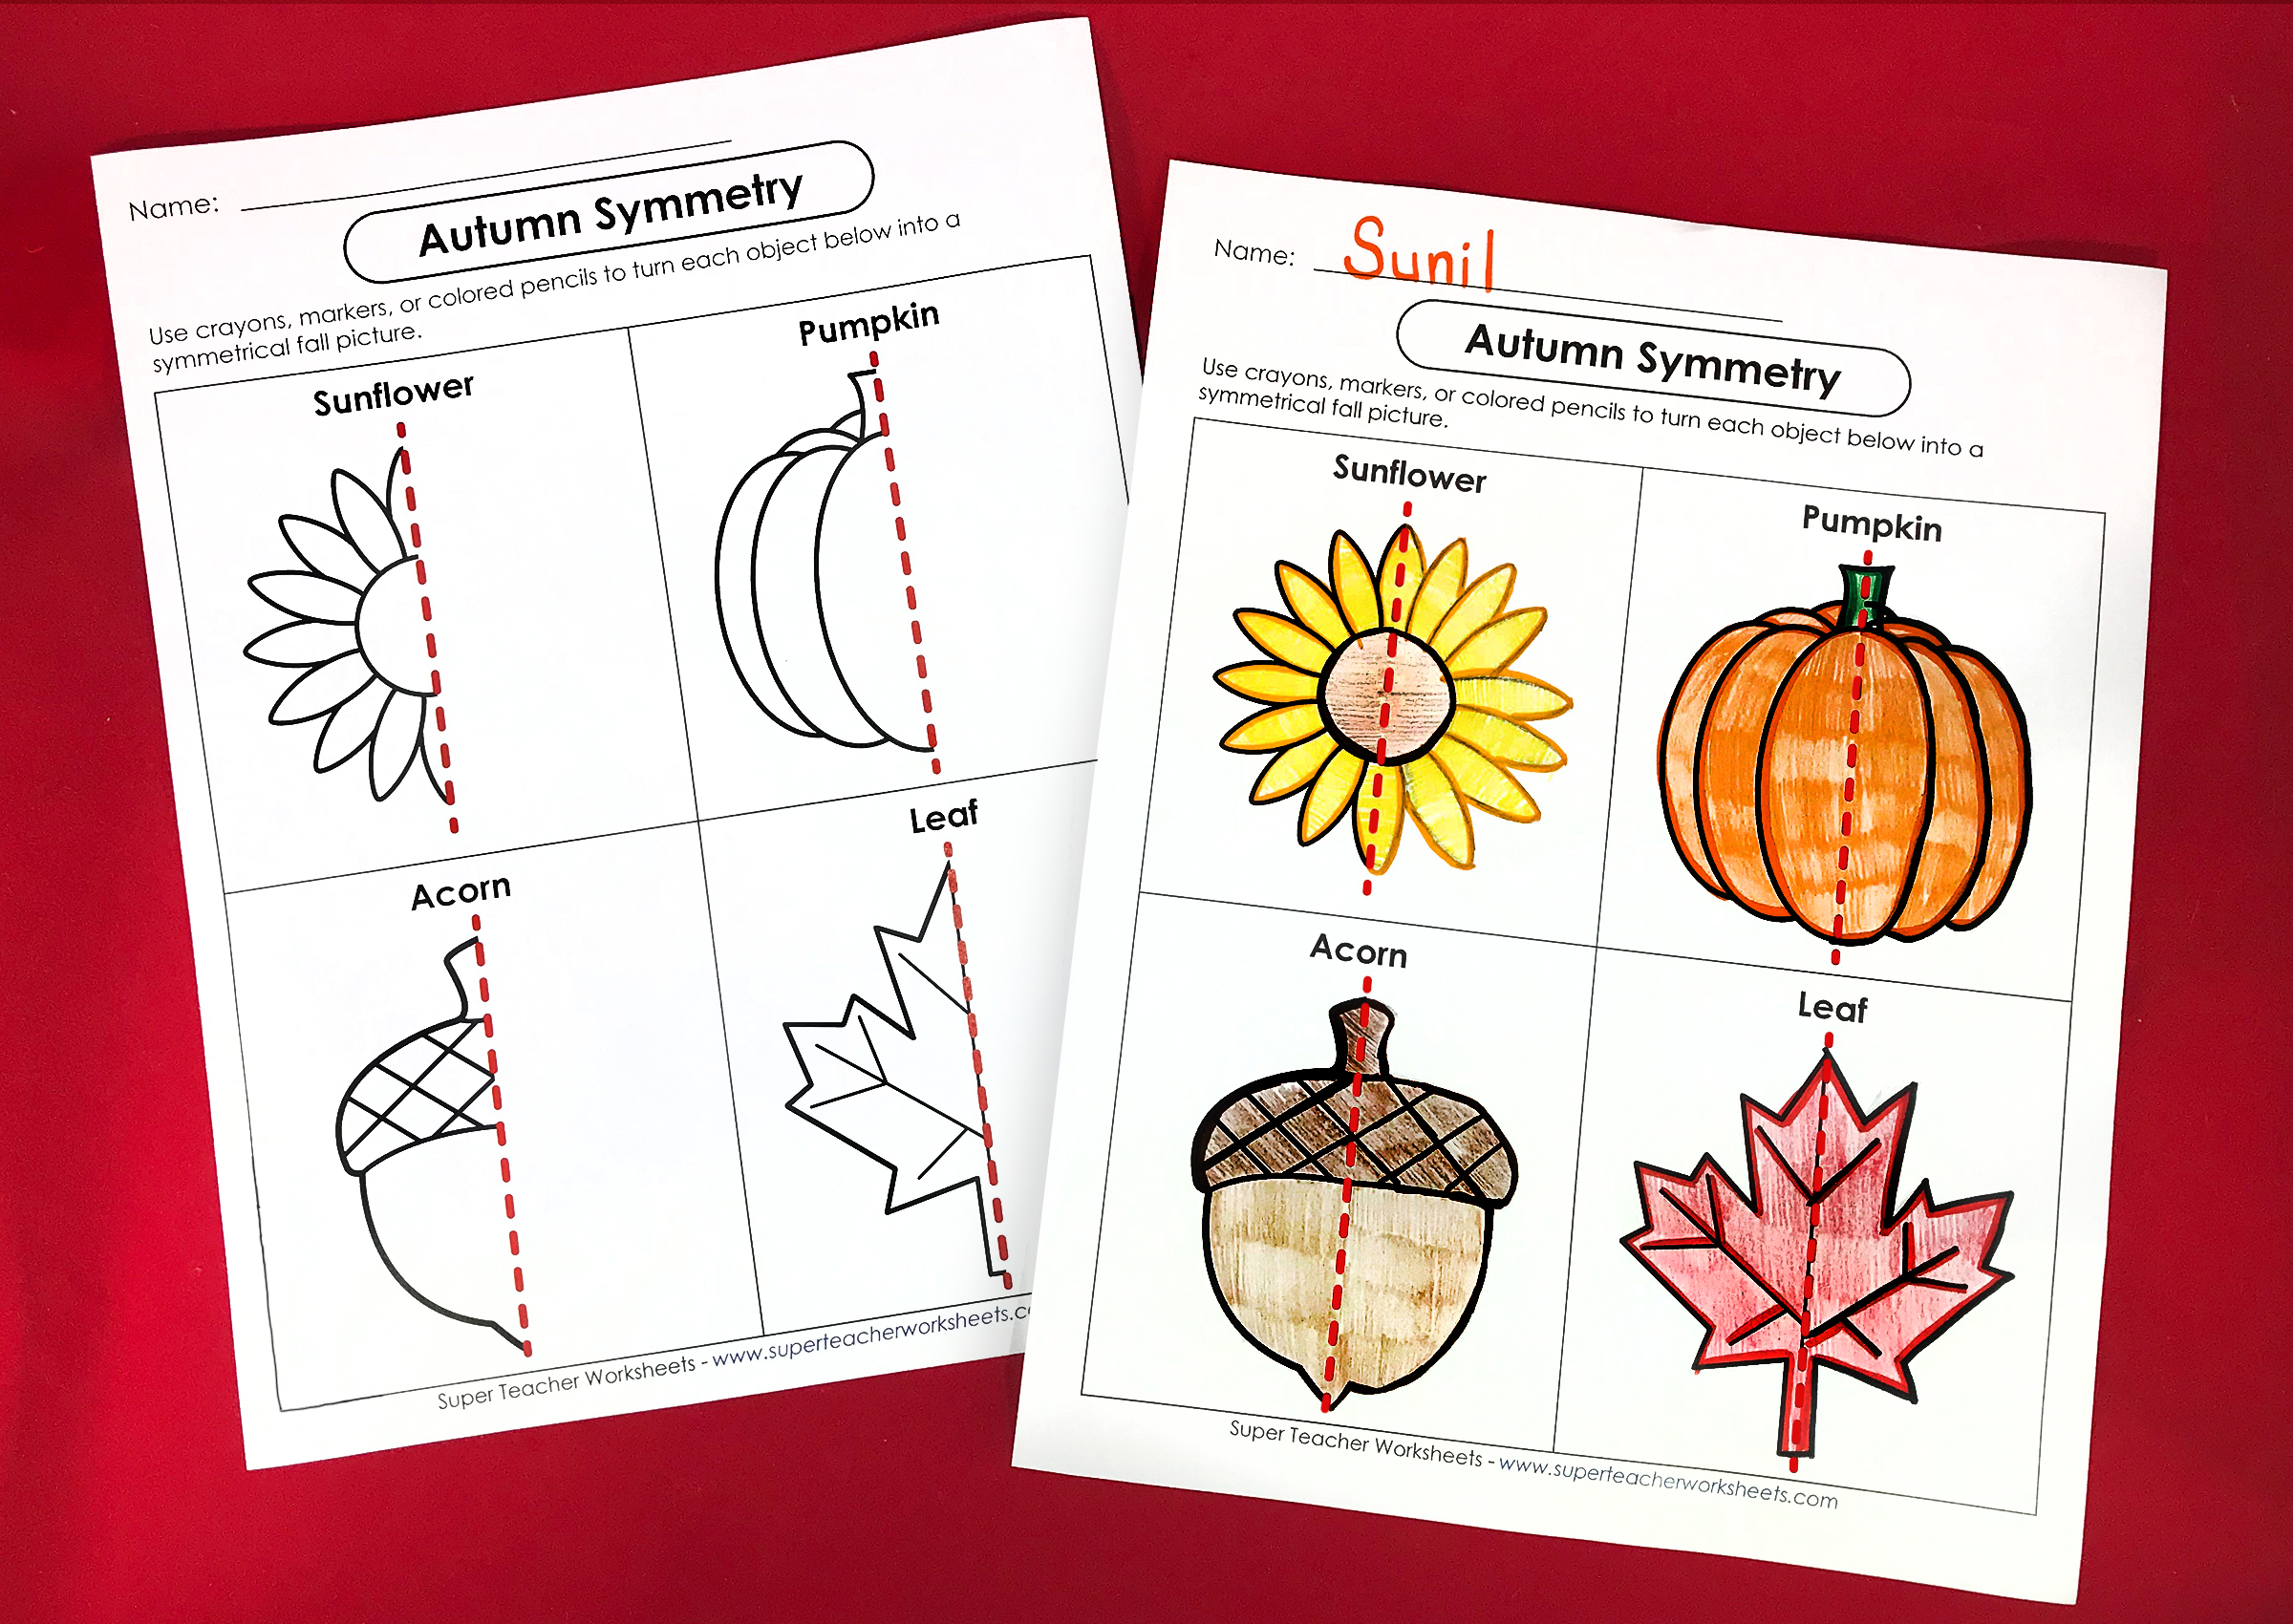 Autumn Symmetry Worksheet